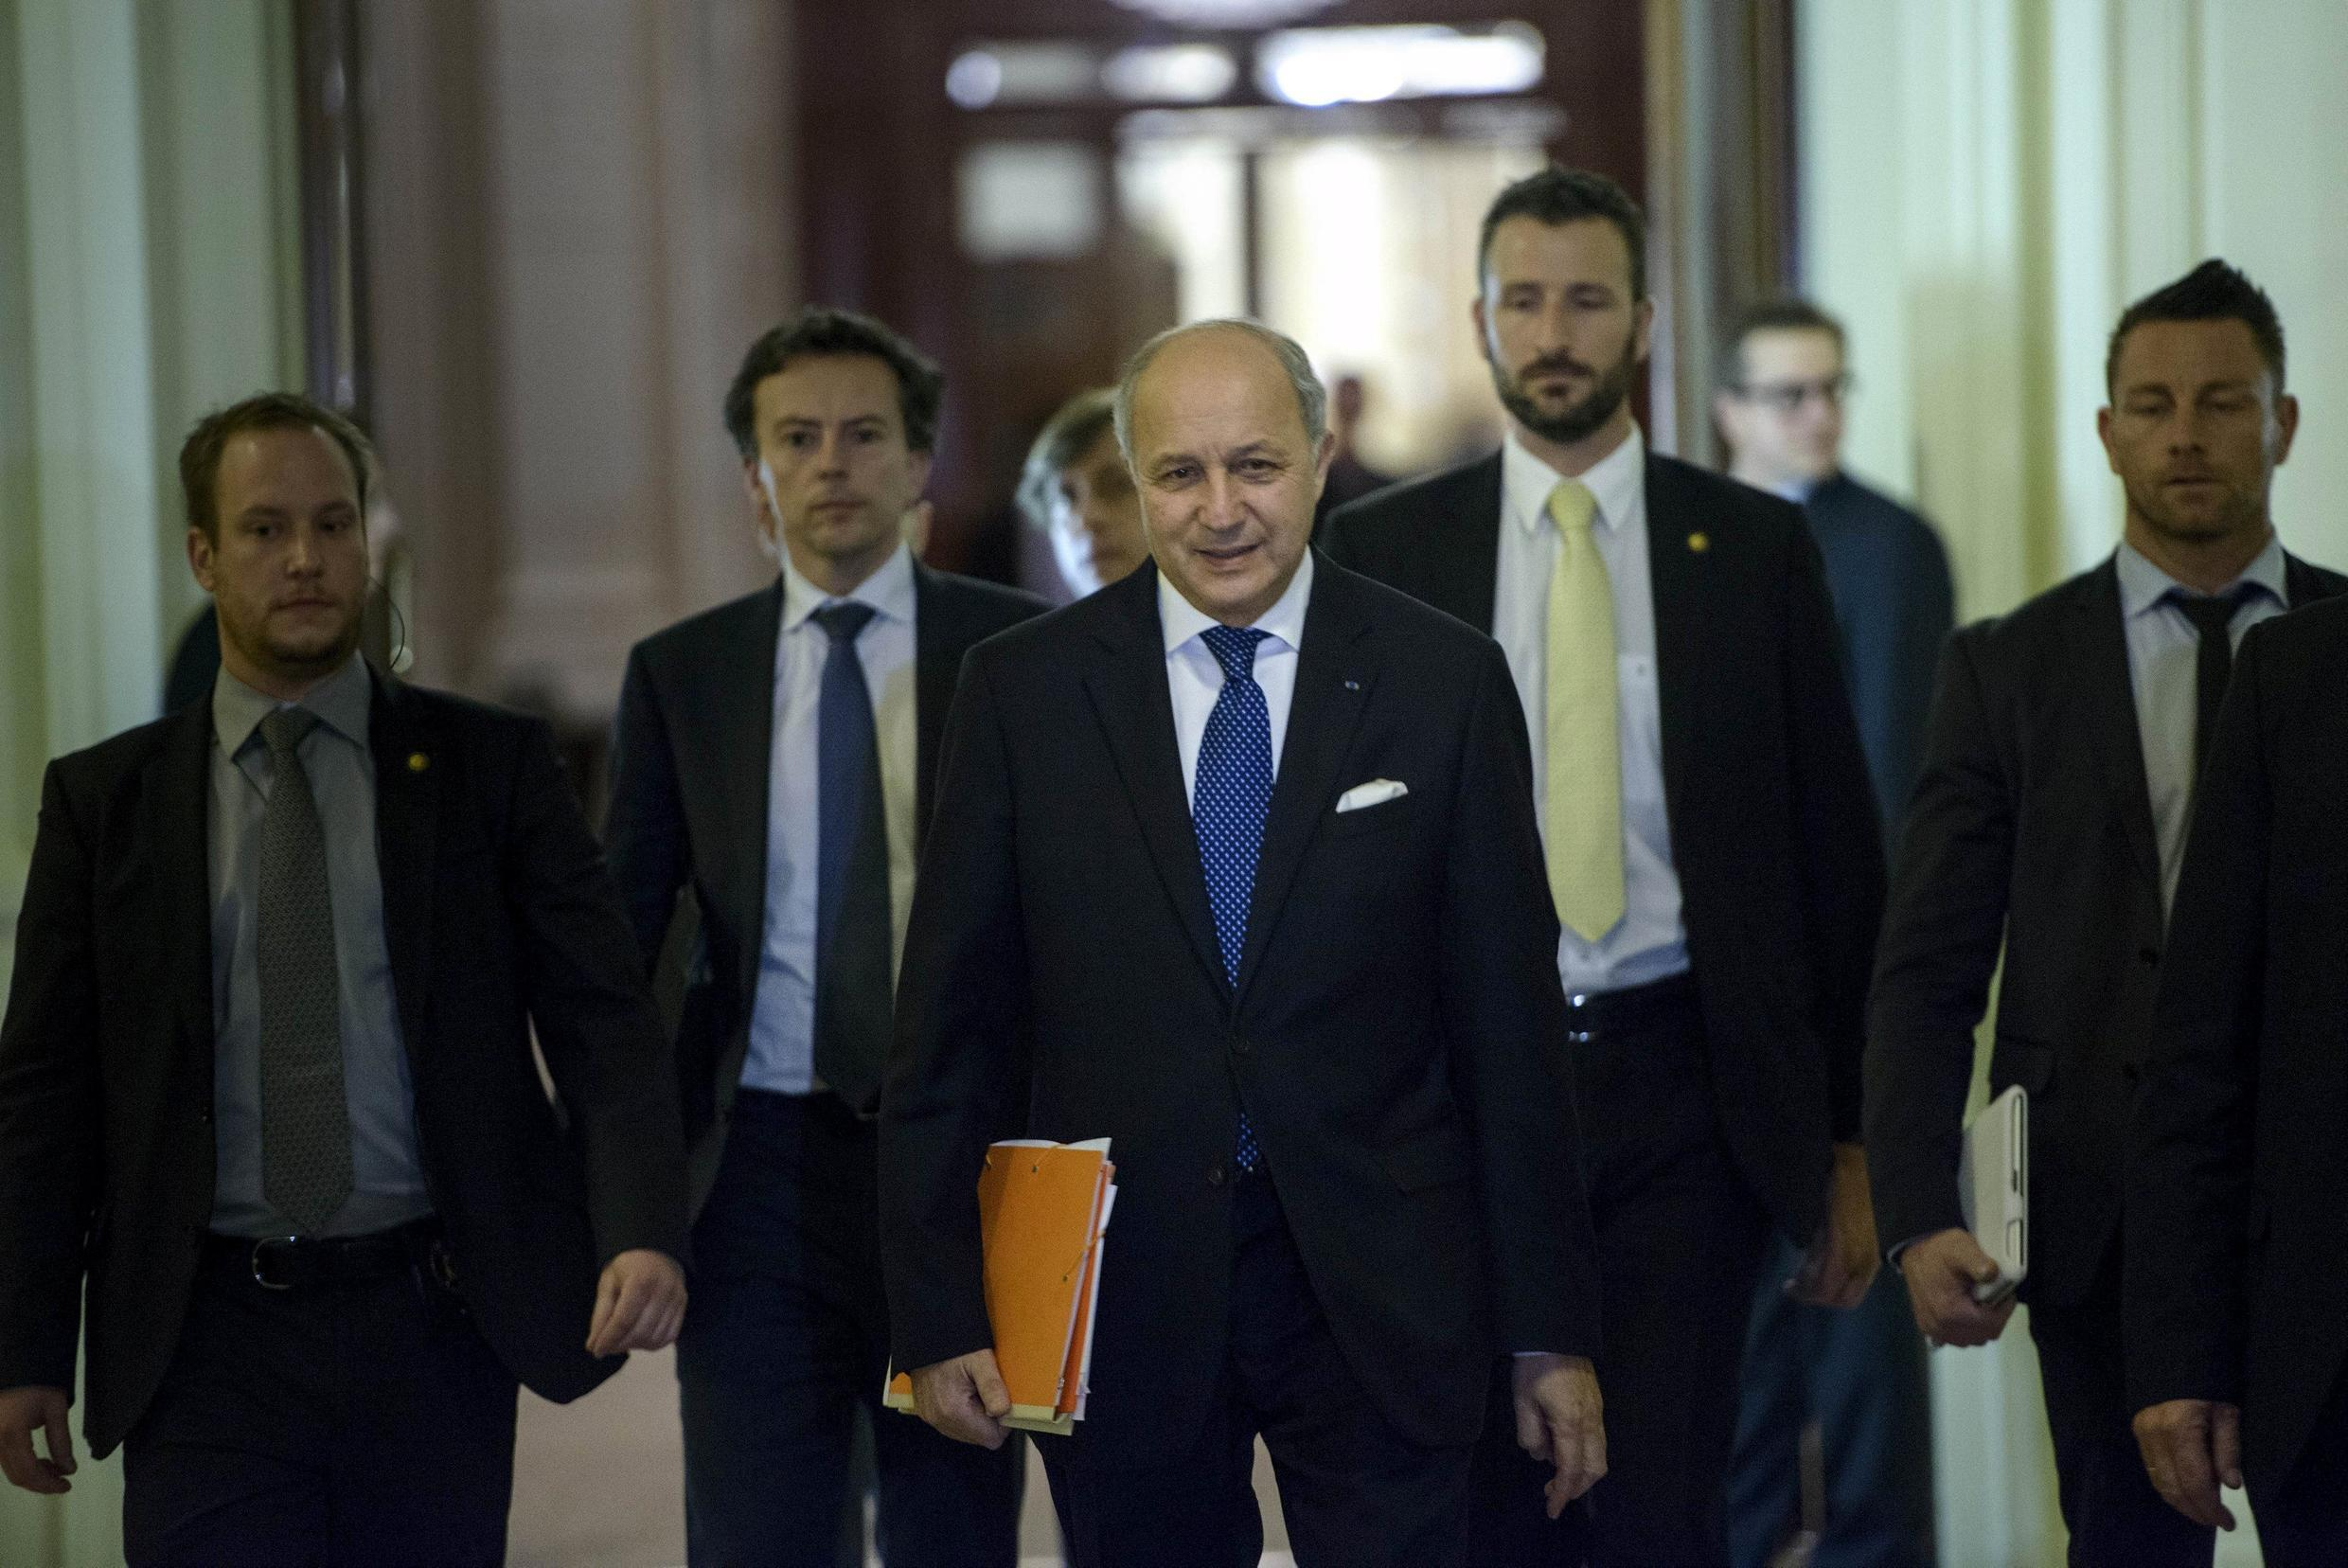 French Foreign Affairs Minister Laurent Fabius in Lausanne for nuclear talks with Iran